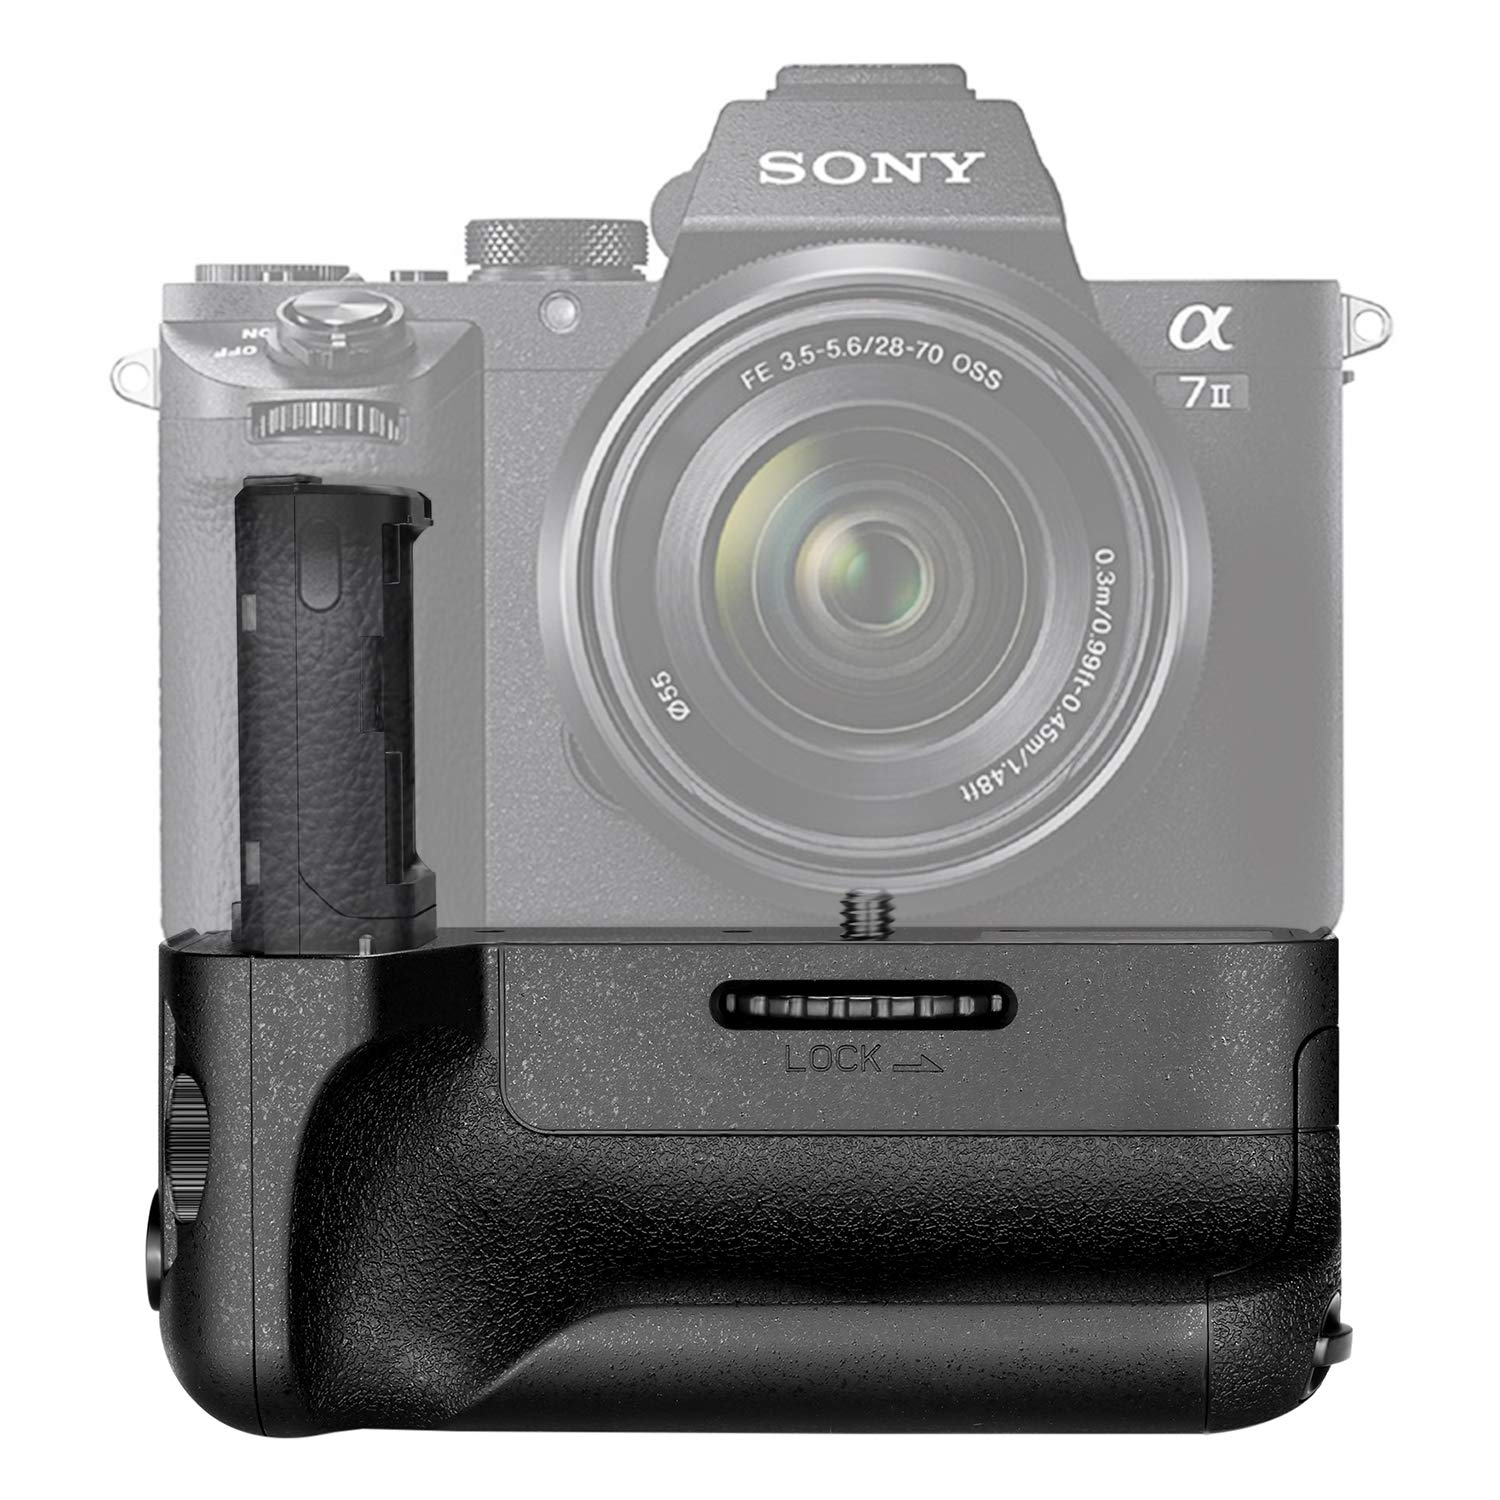 Newmowa VG-C1EM Replacement Vertical Battery Grip for Sony a7 a7r a7s Digital SLR Camera